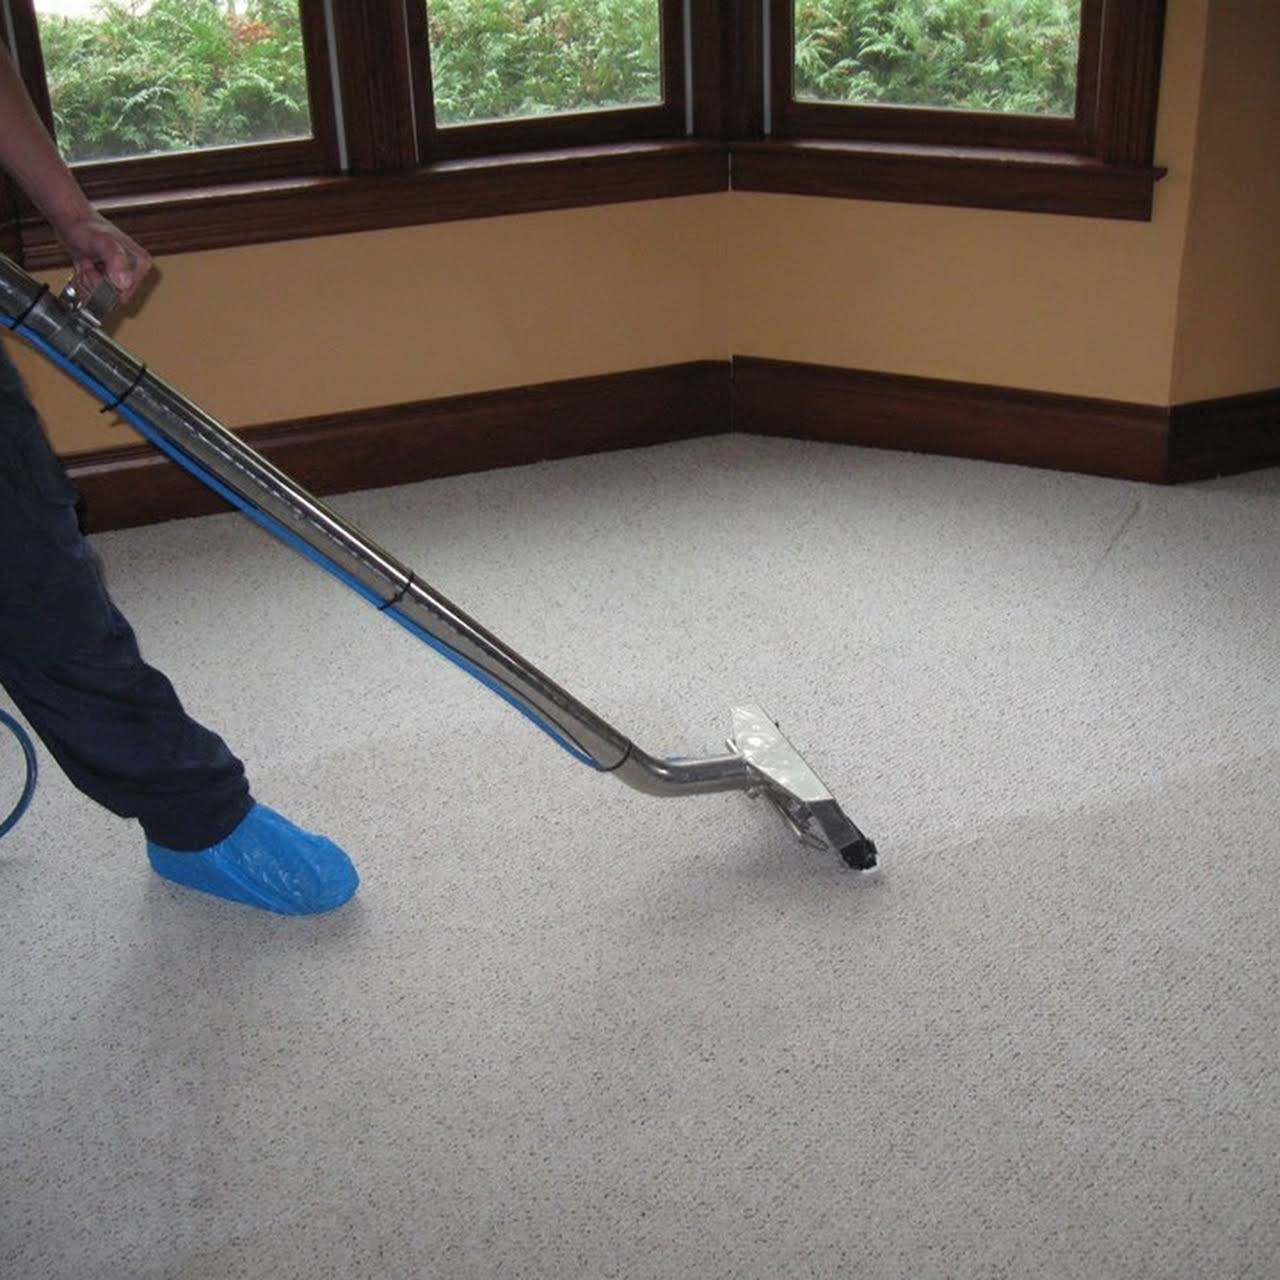 Justperfectcleaningservices Carpet Cleaning Service In